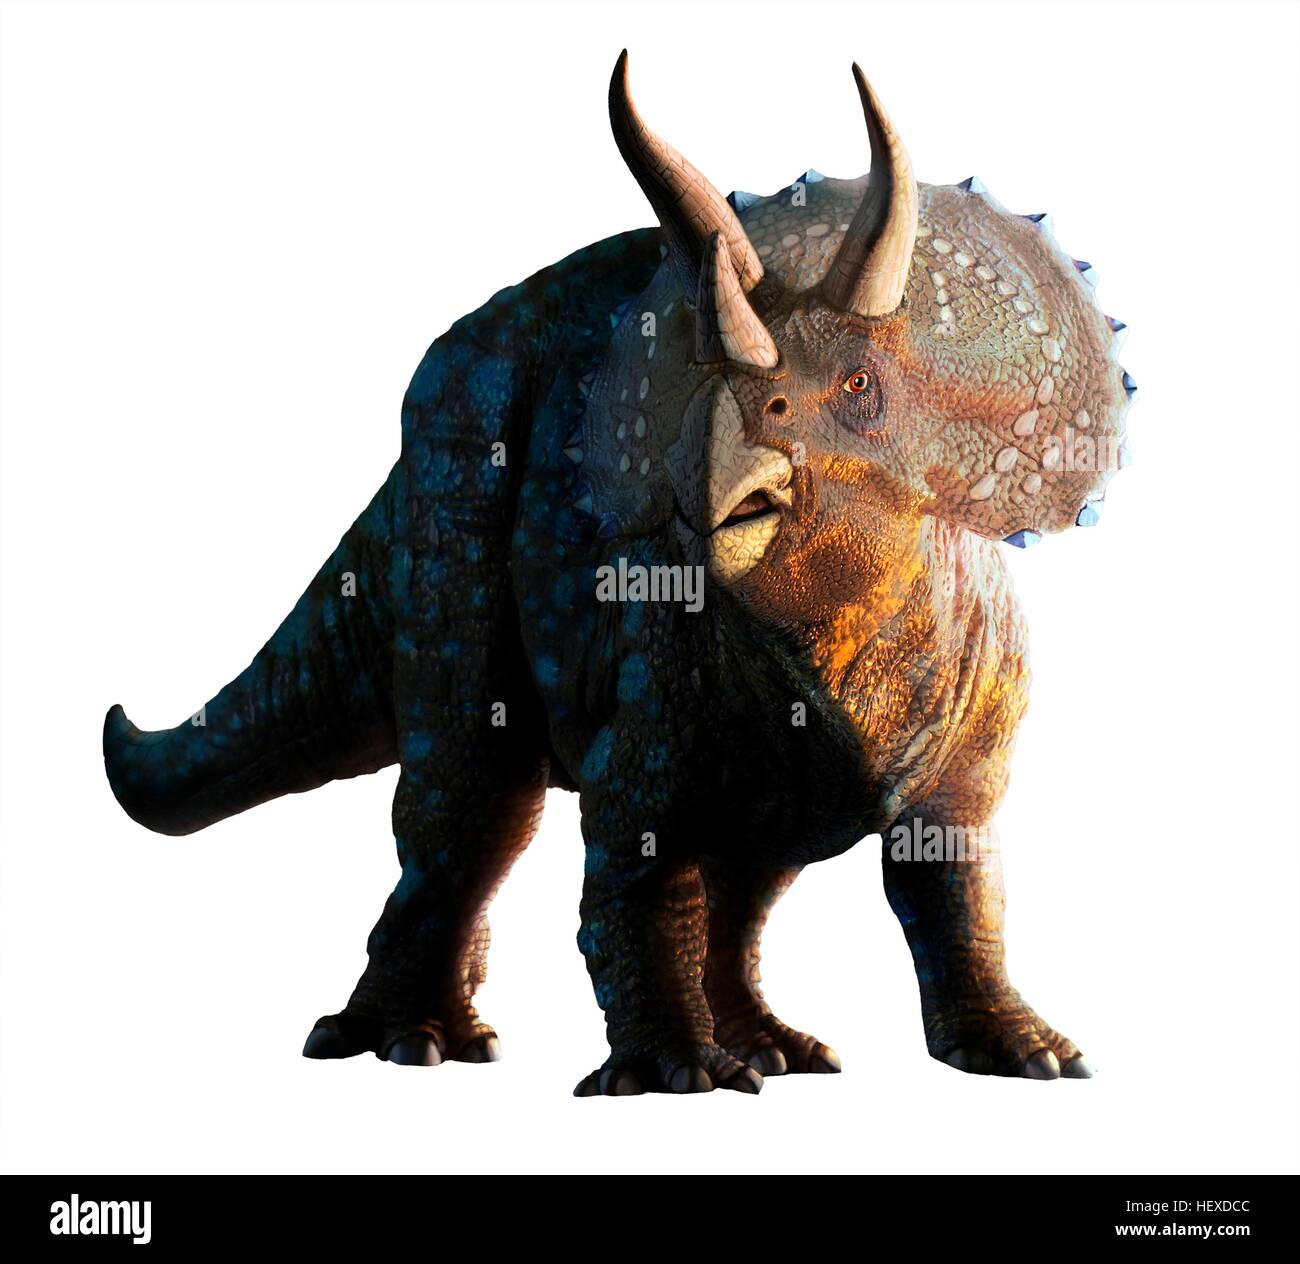 Artwork of a triceratops horridus dinosaur. These animals were common in the late Cretaceous period, from around - Stock Image